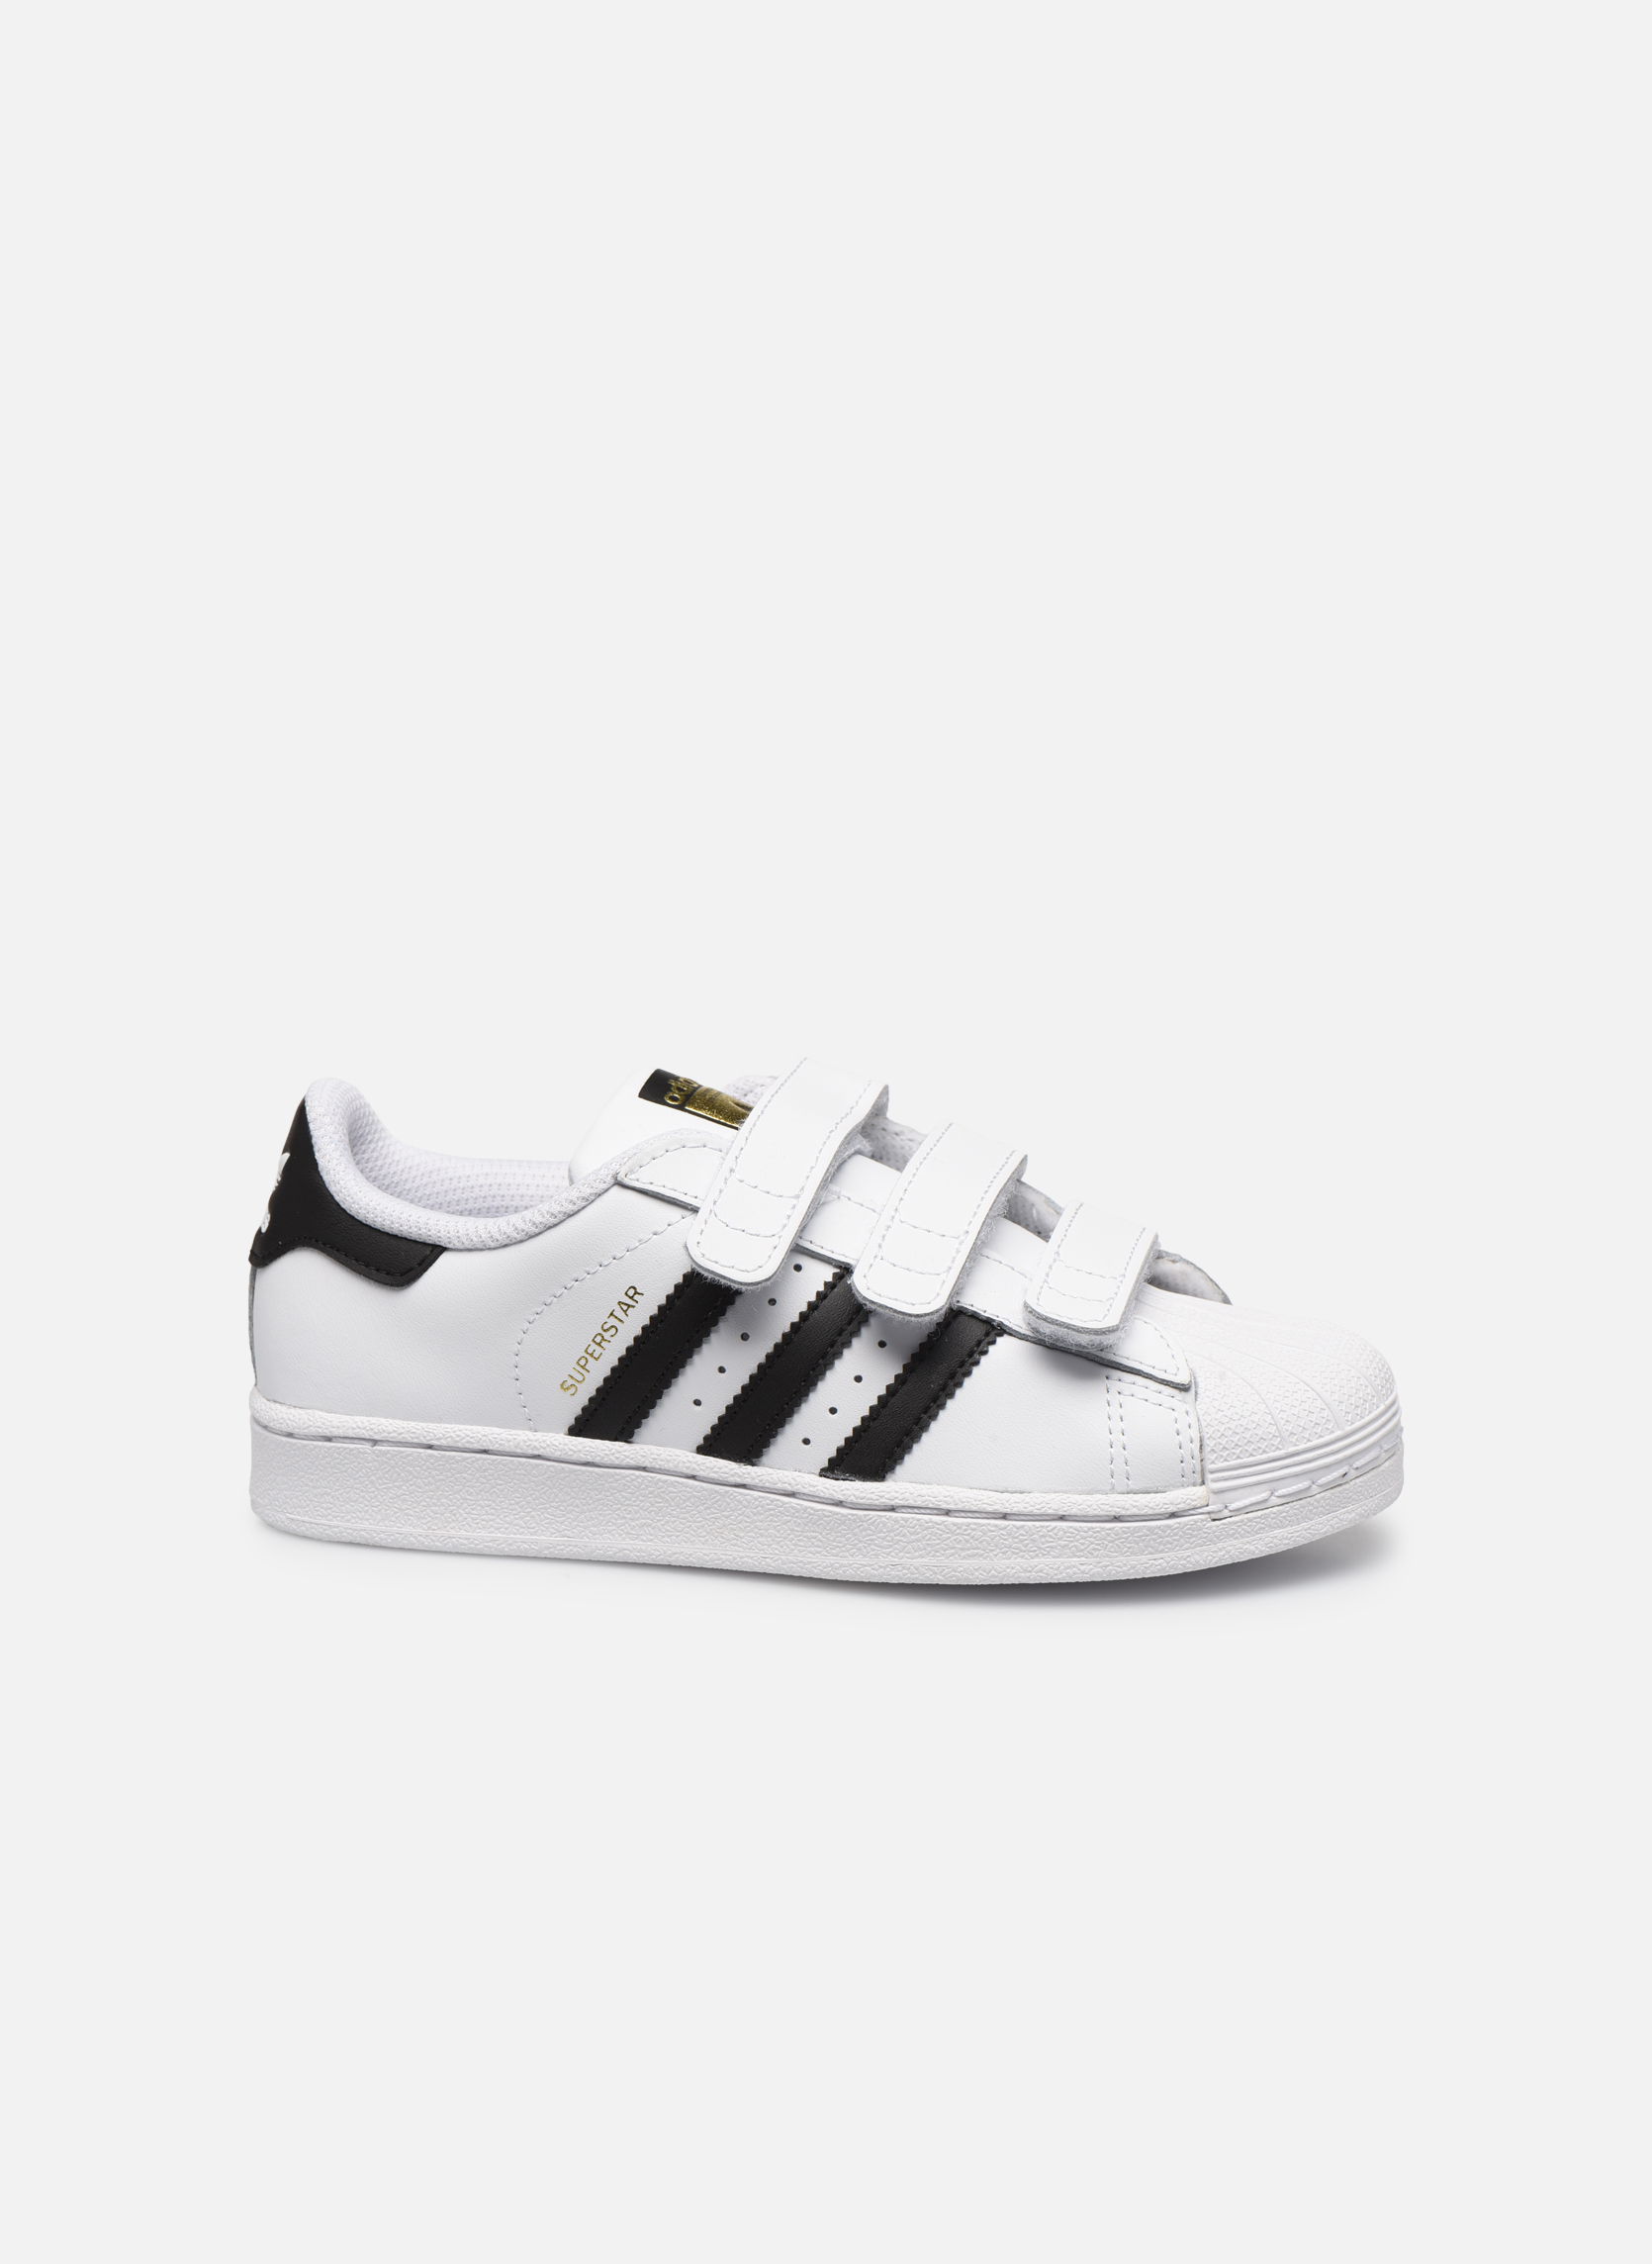 Ftwbla/Ftwbla/Ftwbla Adidas Originals Superstar Foundation Cf C (Blanc)